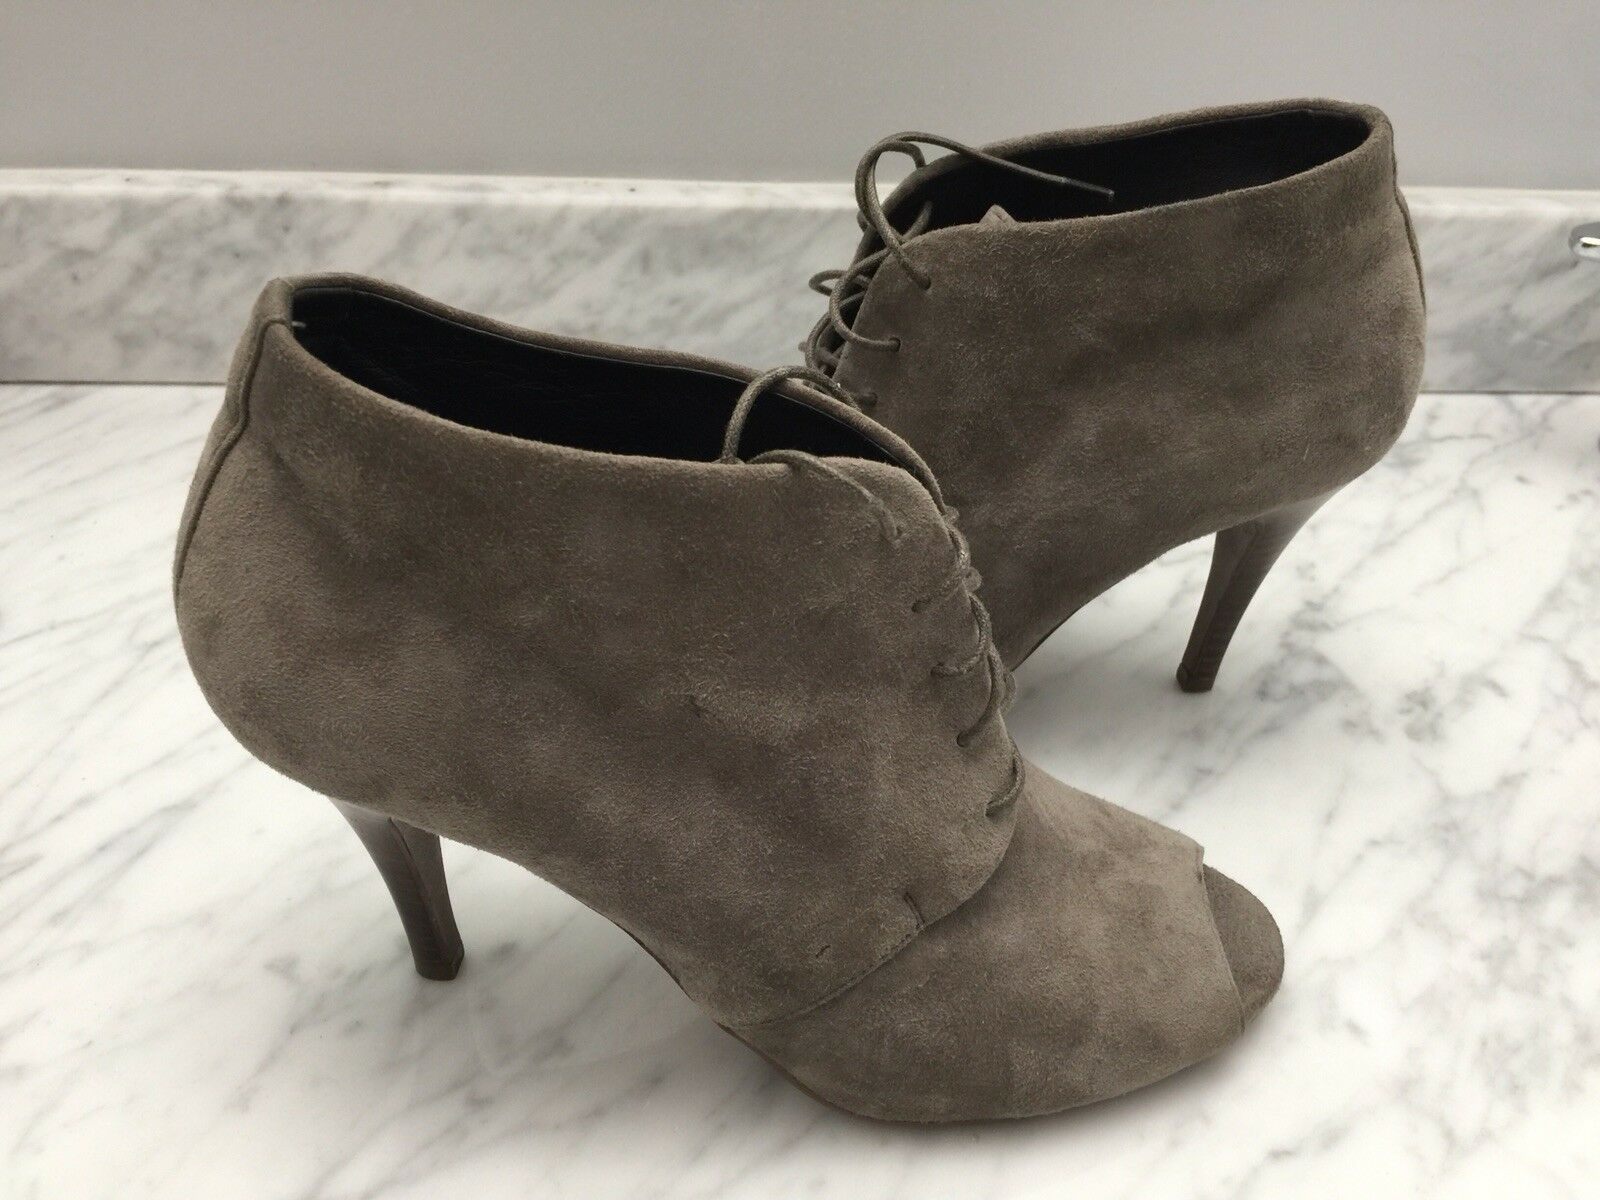 NEW J.CREW Archer Peep-Toe Gray Suede Leather Ankle Boots Sz 6M